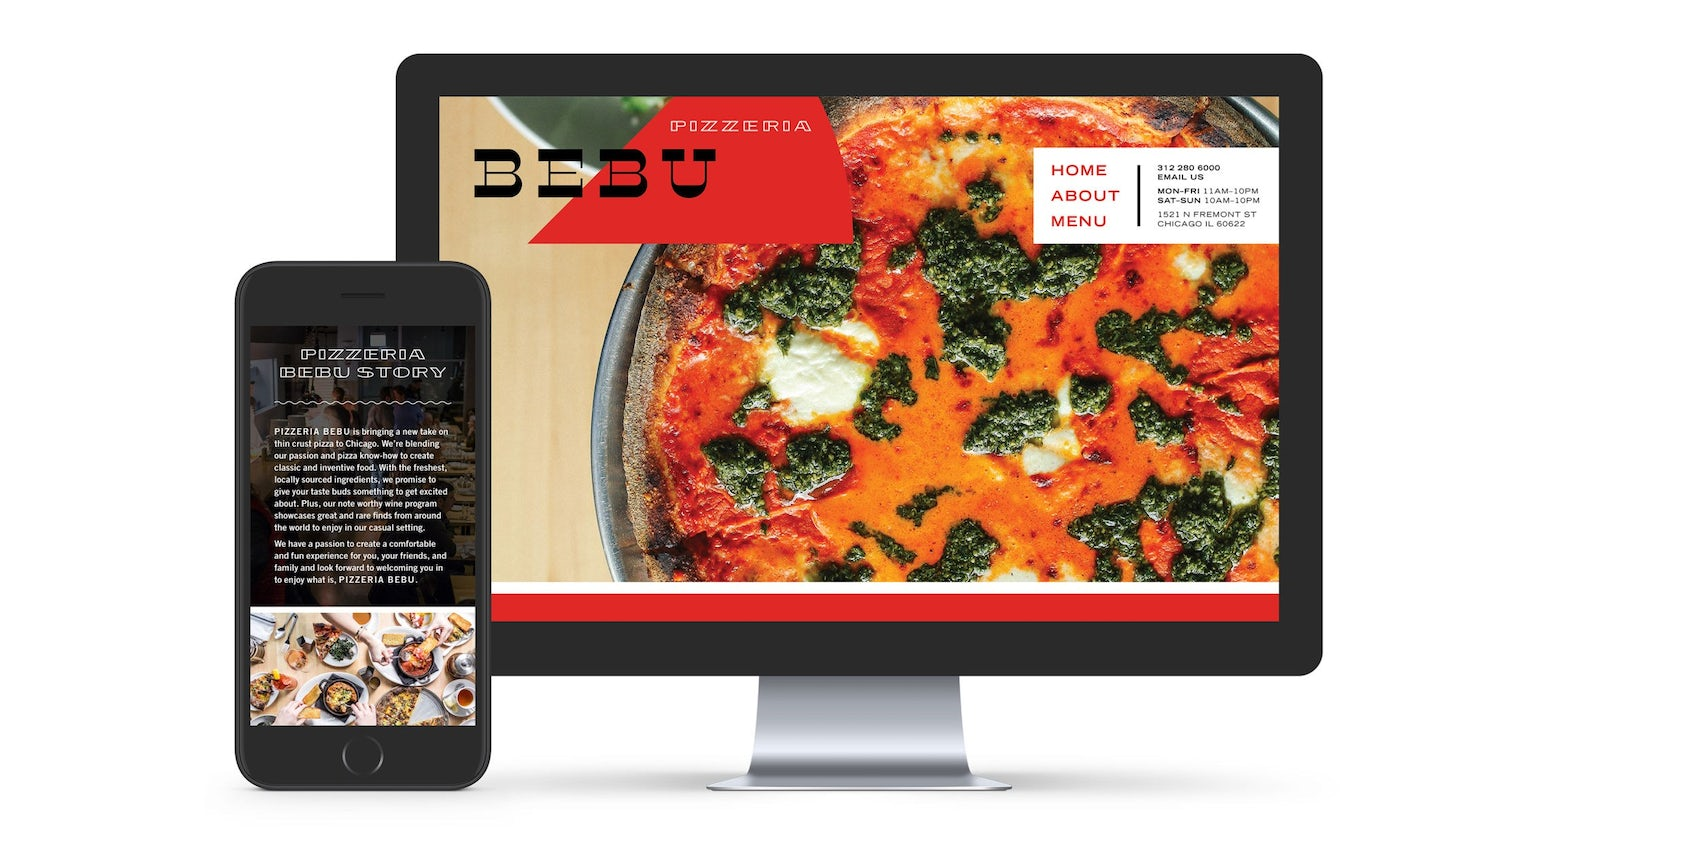 Pizzeria Bebu Graphic Identity Website Design